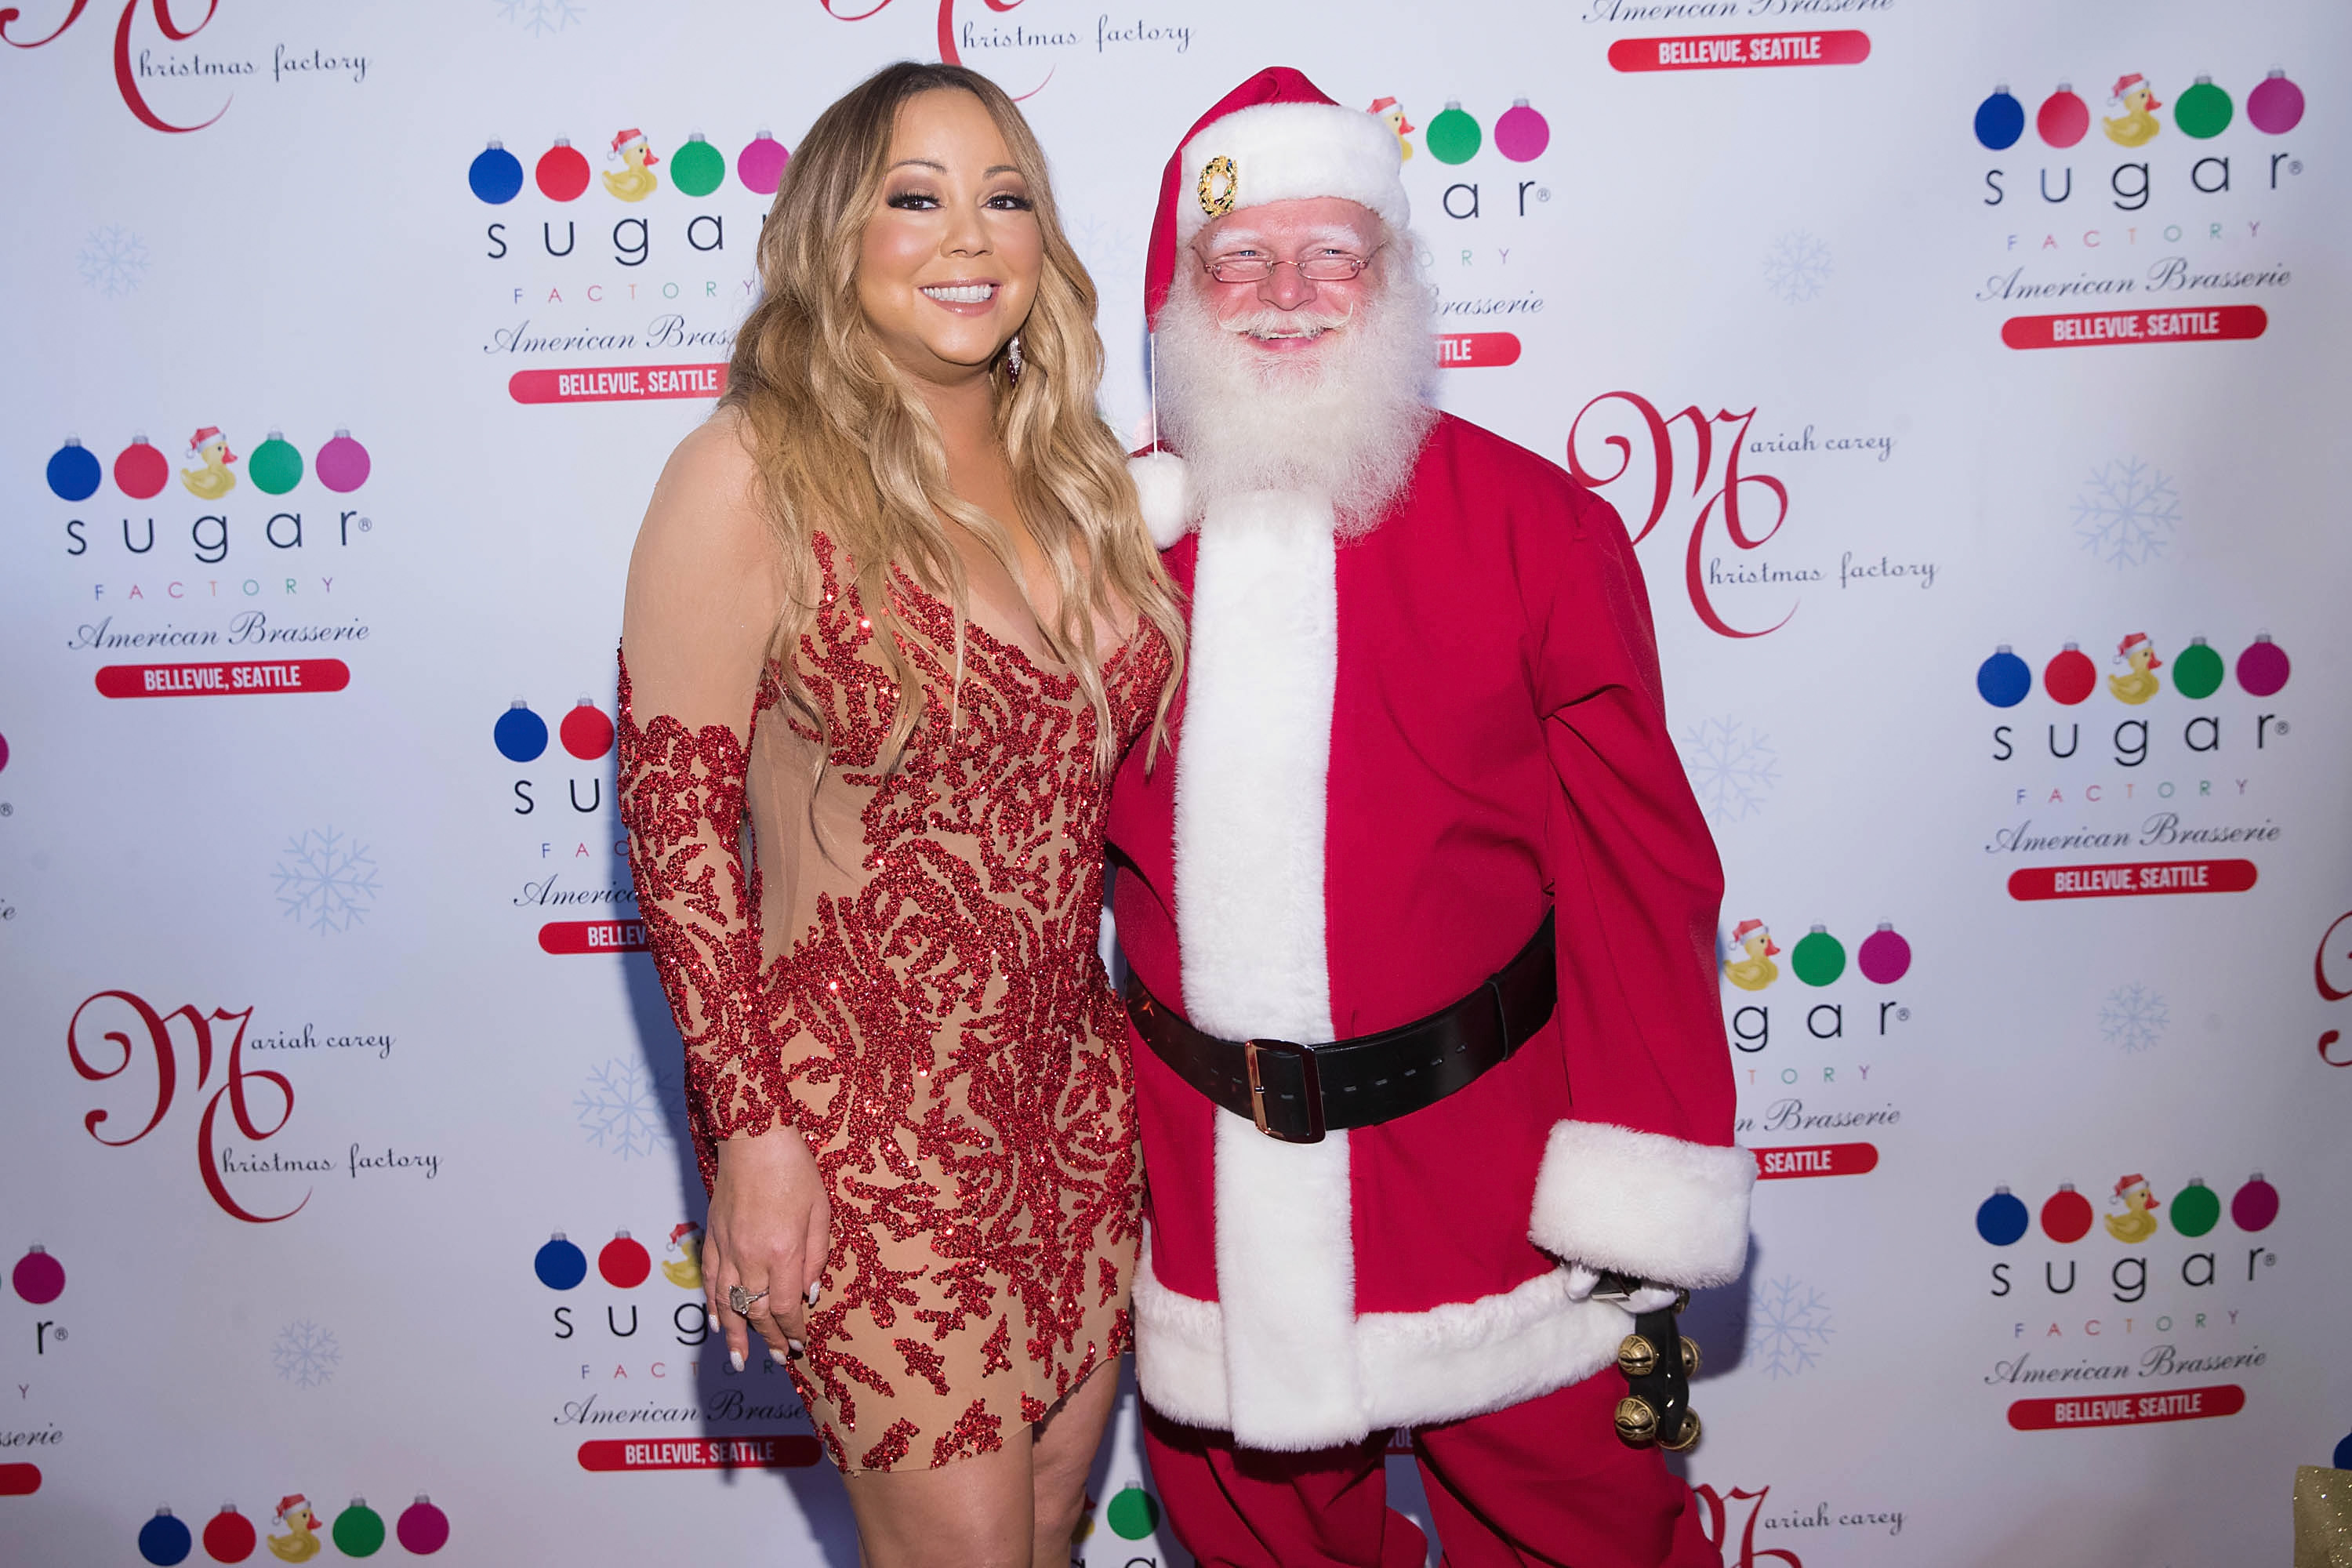 Mariah Careys All I Want For Christmas Is You.Mariah Carey S All I Want For Christmas Is You Re Enters